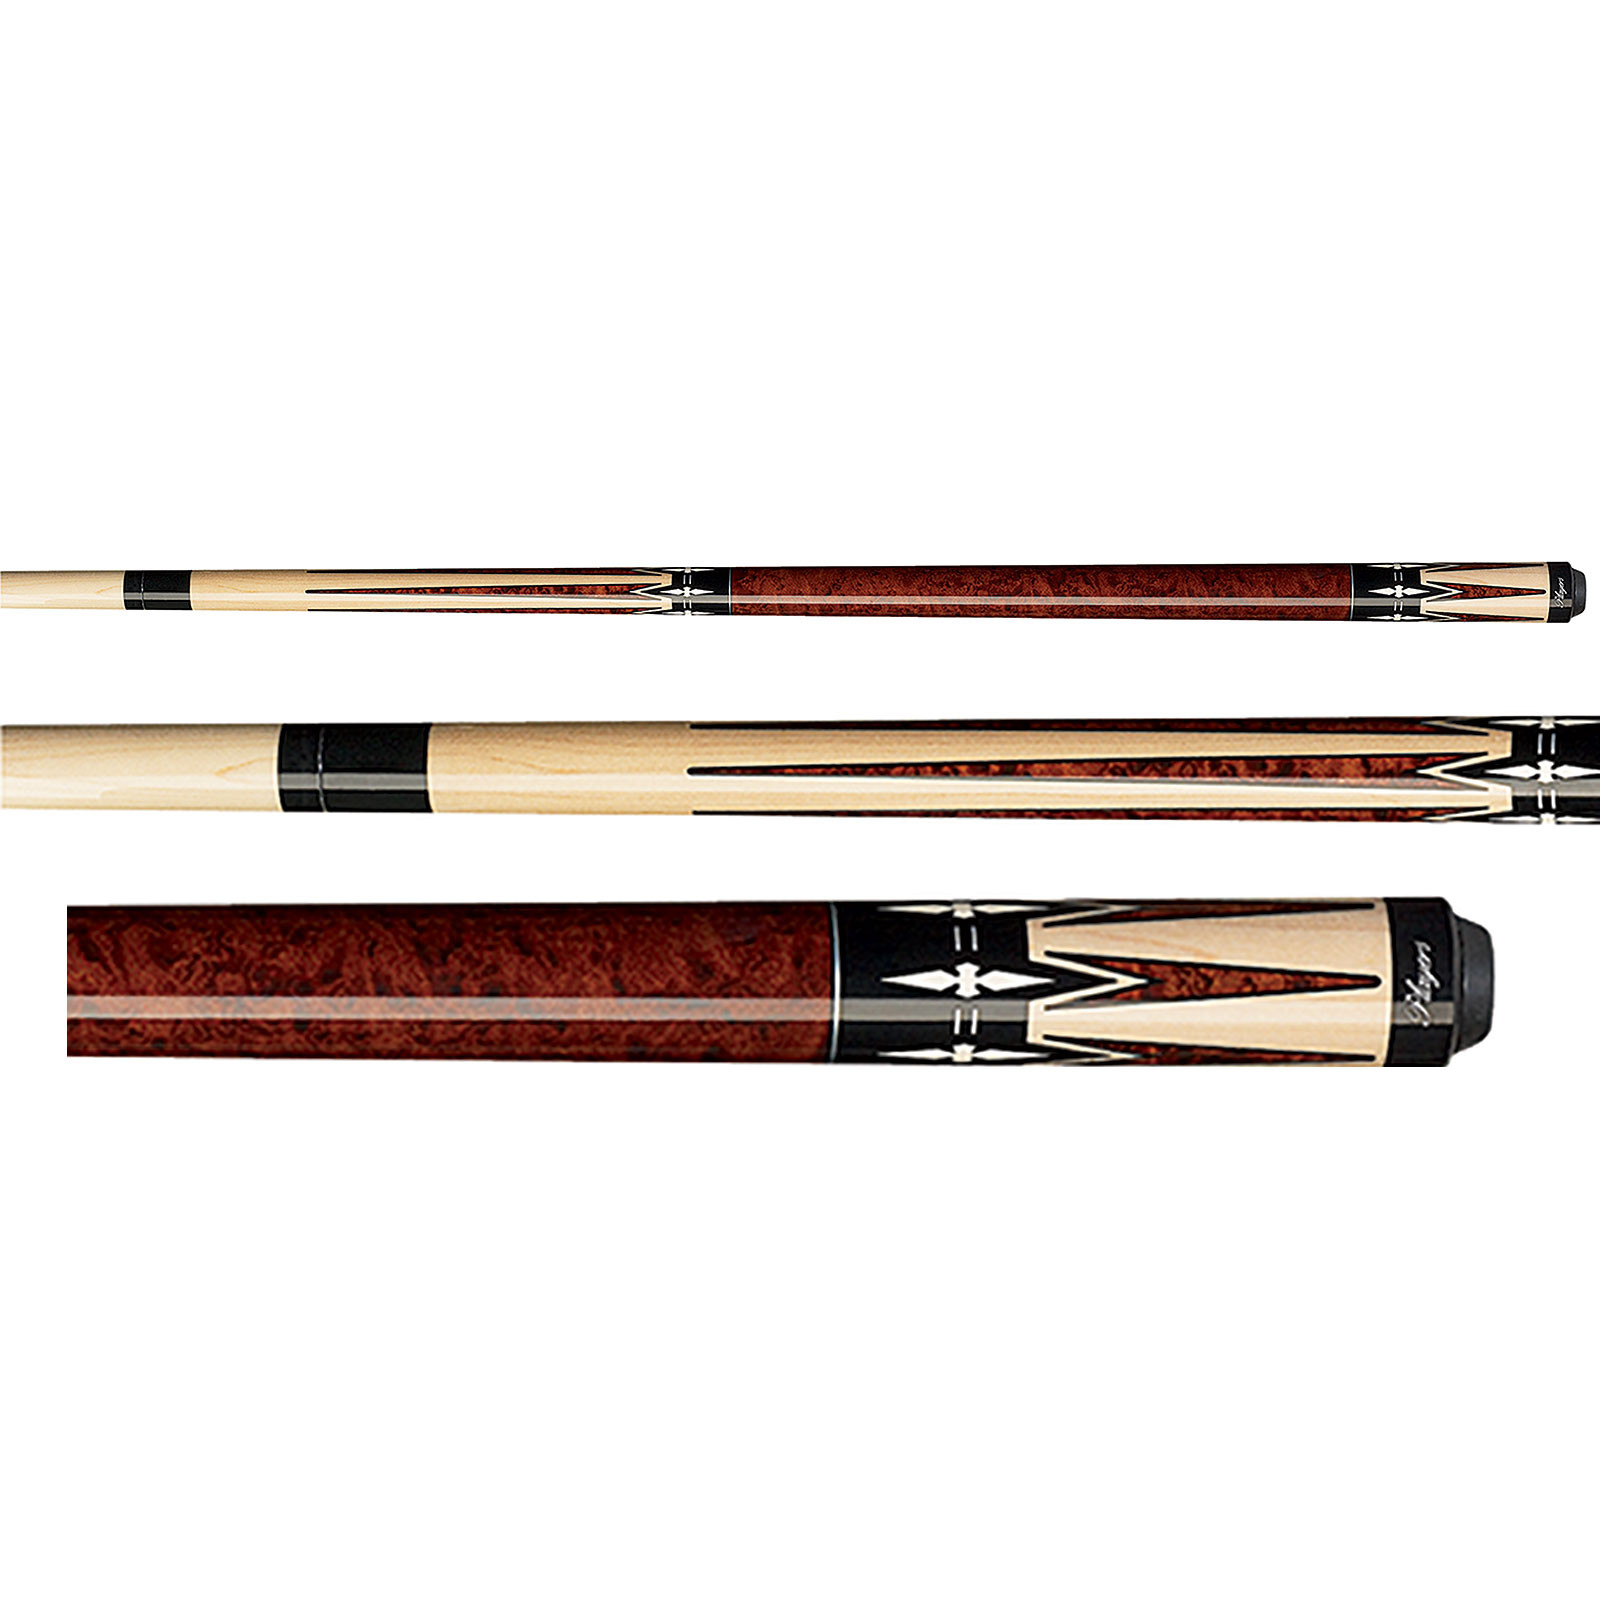 Players G 2290 Walnut Brown Pool Cue Stick